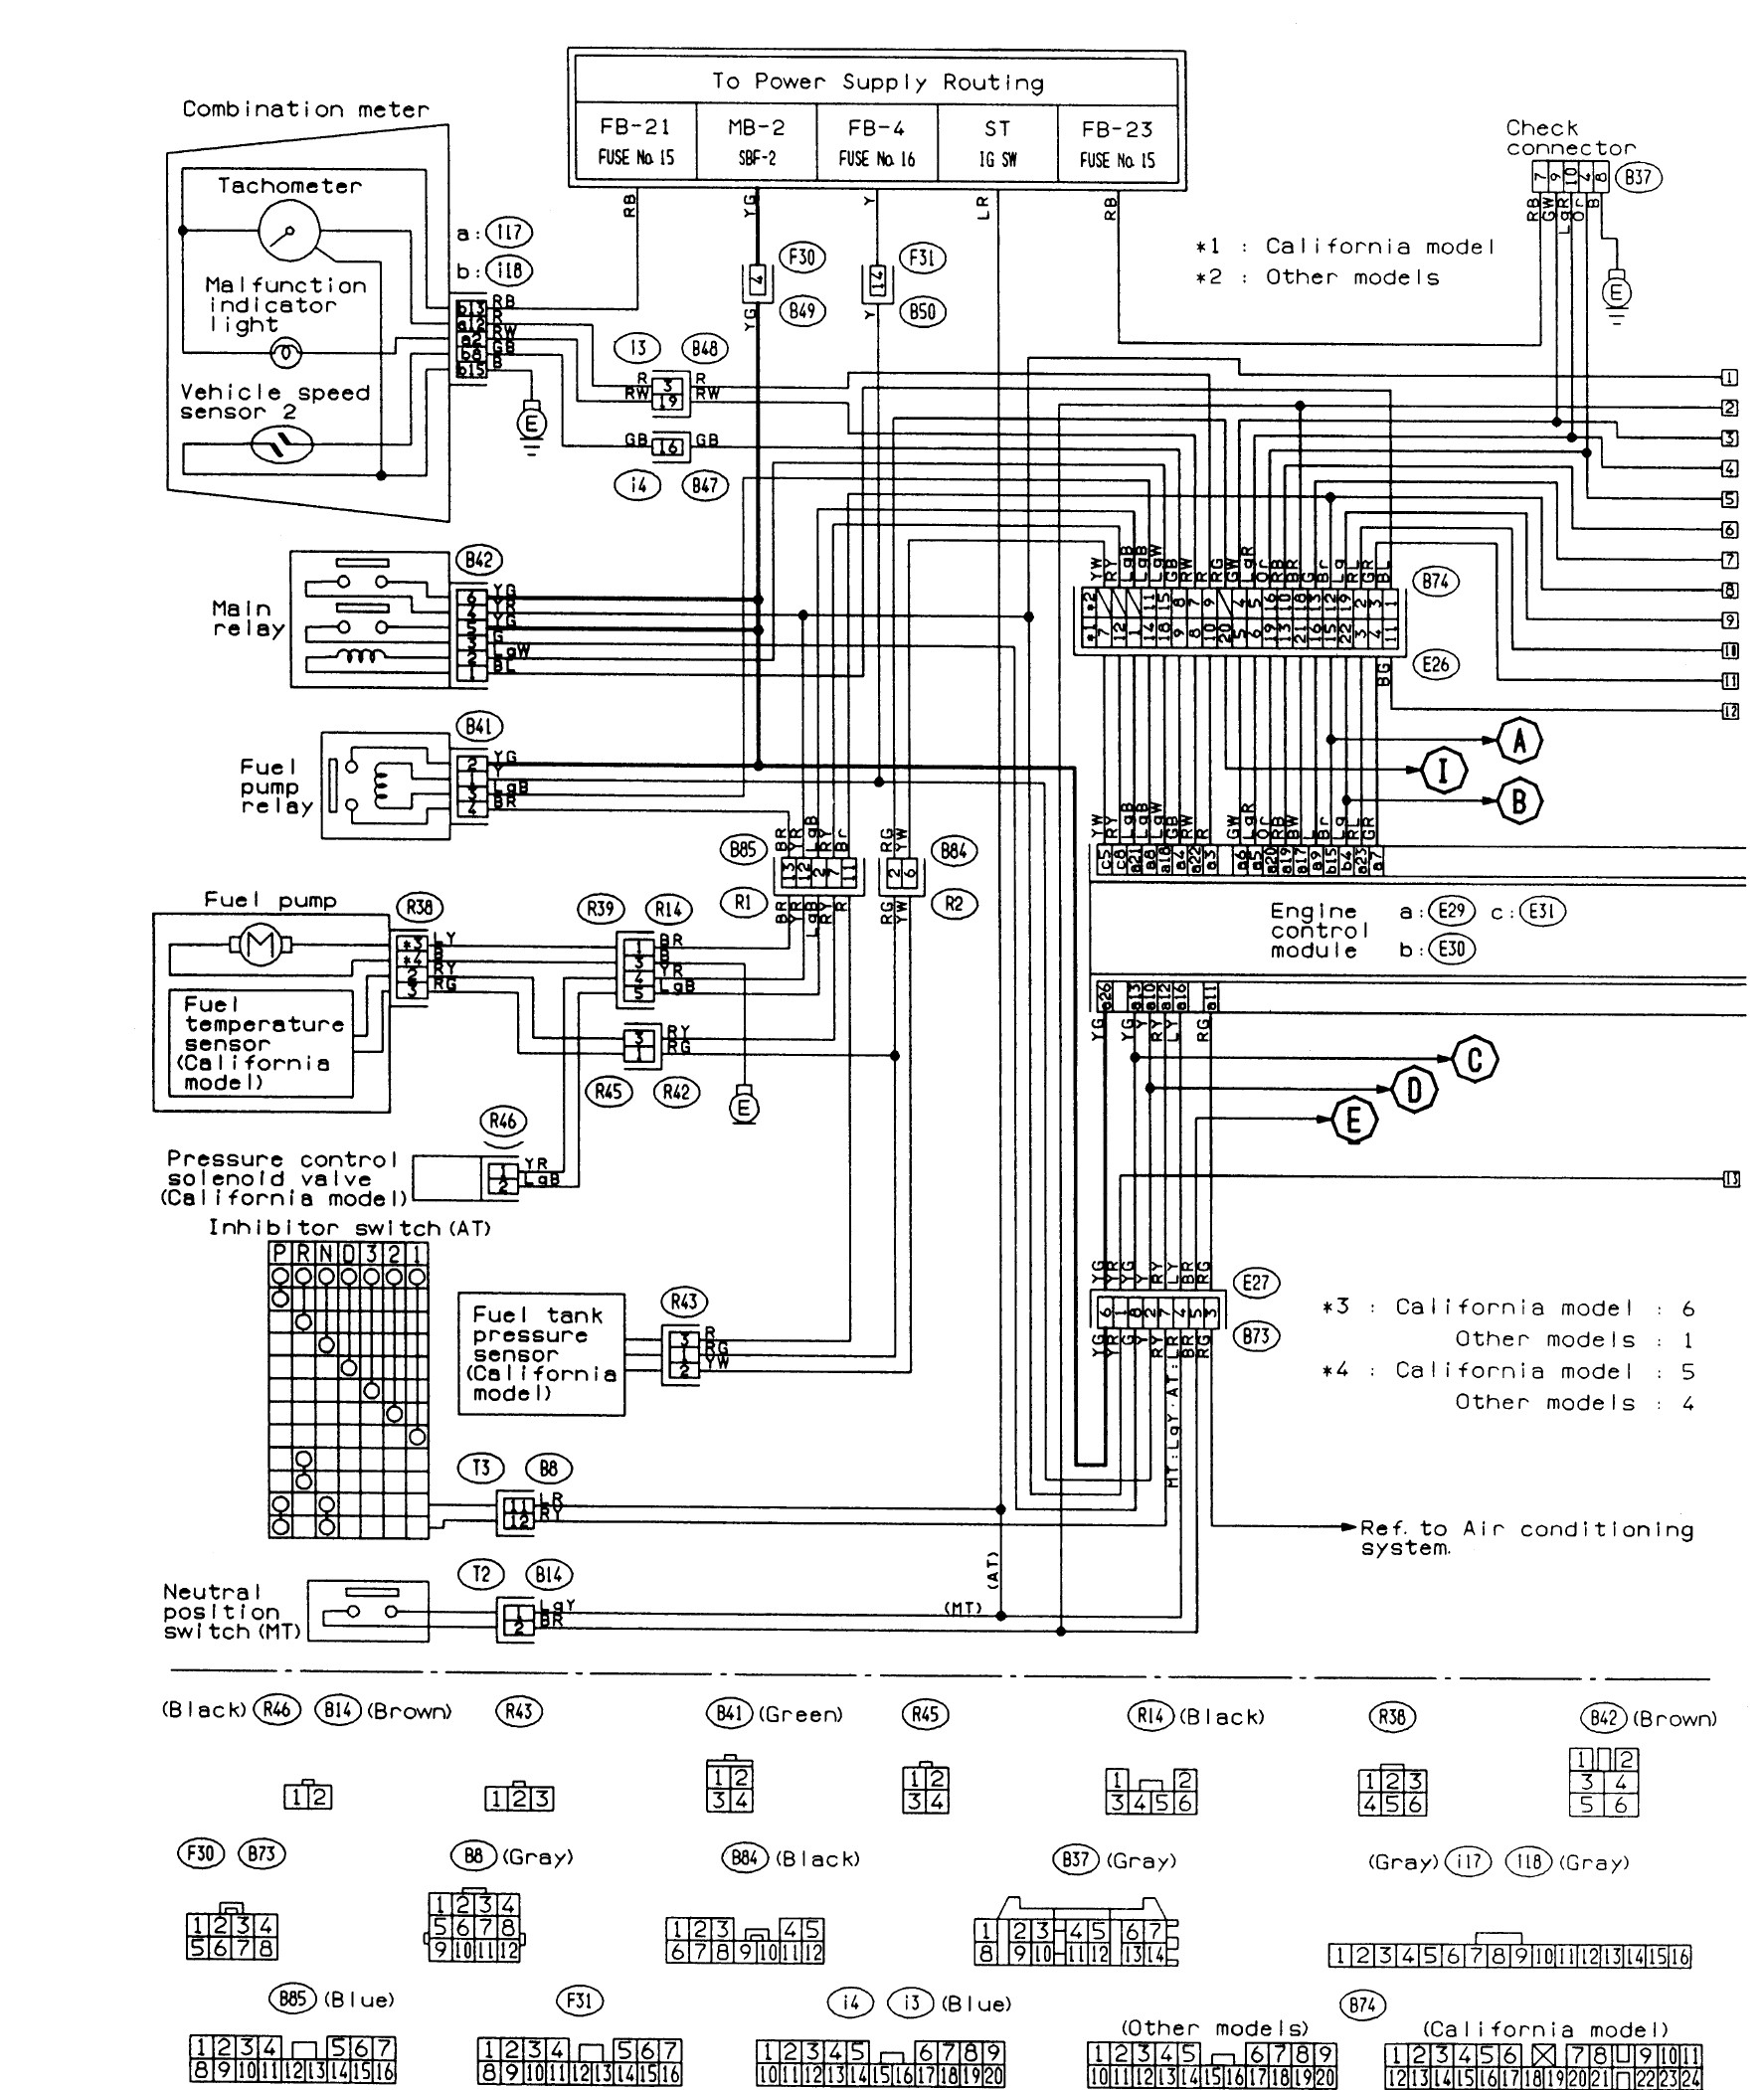 hight resolution of subaru legacy wiring diagram collection 2002 jeep grand cherokee transmission wiring diagram refrence 2008 rh